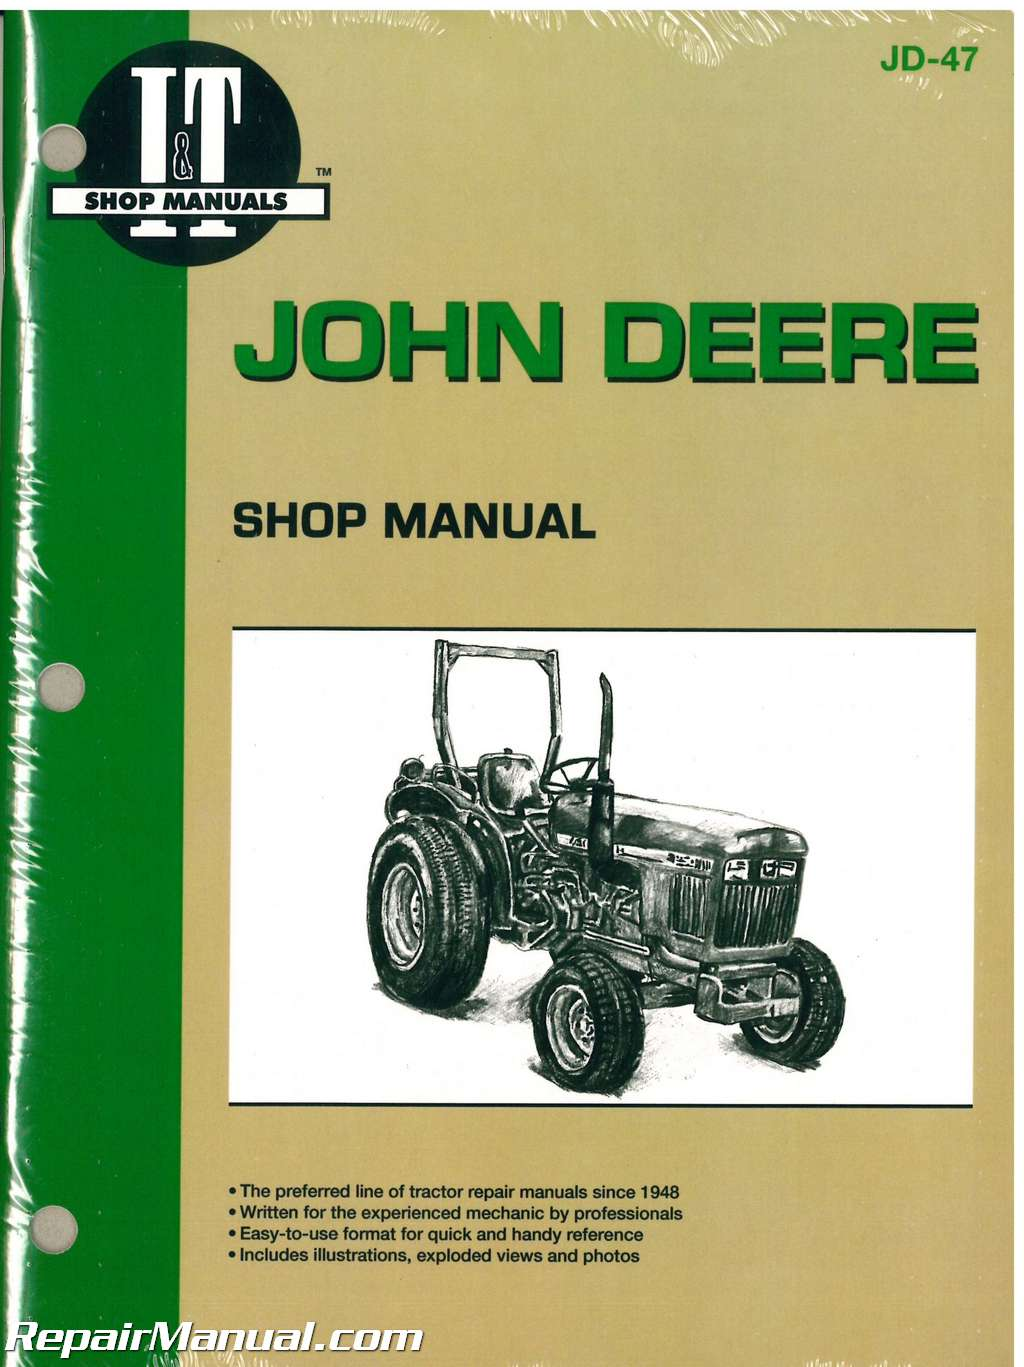 John Deere 850 950 1050 Tractor Workshop Manual   Jd